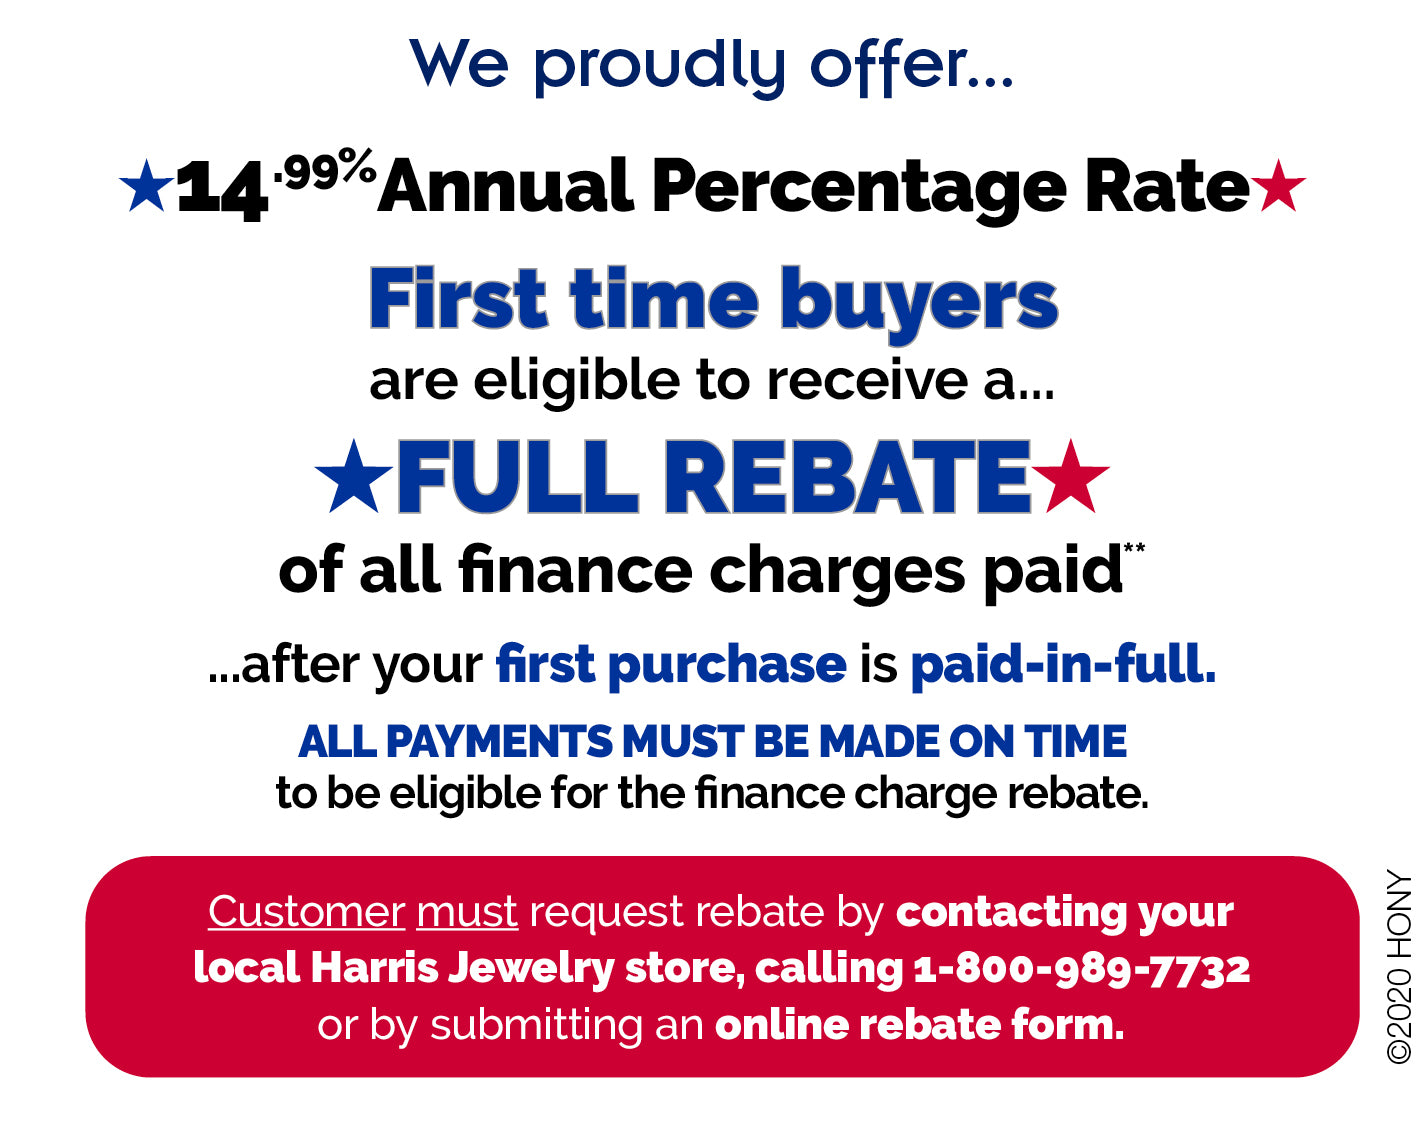 We proudly offer... 14.99% Annual Percentage Rate. First Time Buyers are eligible to receive a FULL REBATE of All Finance Charges Paid On your first purchase only, when it is paid-in-full. ALL PAYMENTS MUST BE MADE ON TIME. to be eligible for the Finance Charge Rebate. Customer must request rebate by contacting your local Harris Jewelry store, calling 1-800-989-7732 or by Online Rebate Form at www.harrisjewelry.com